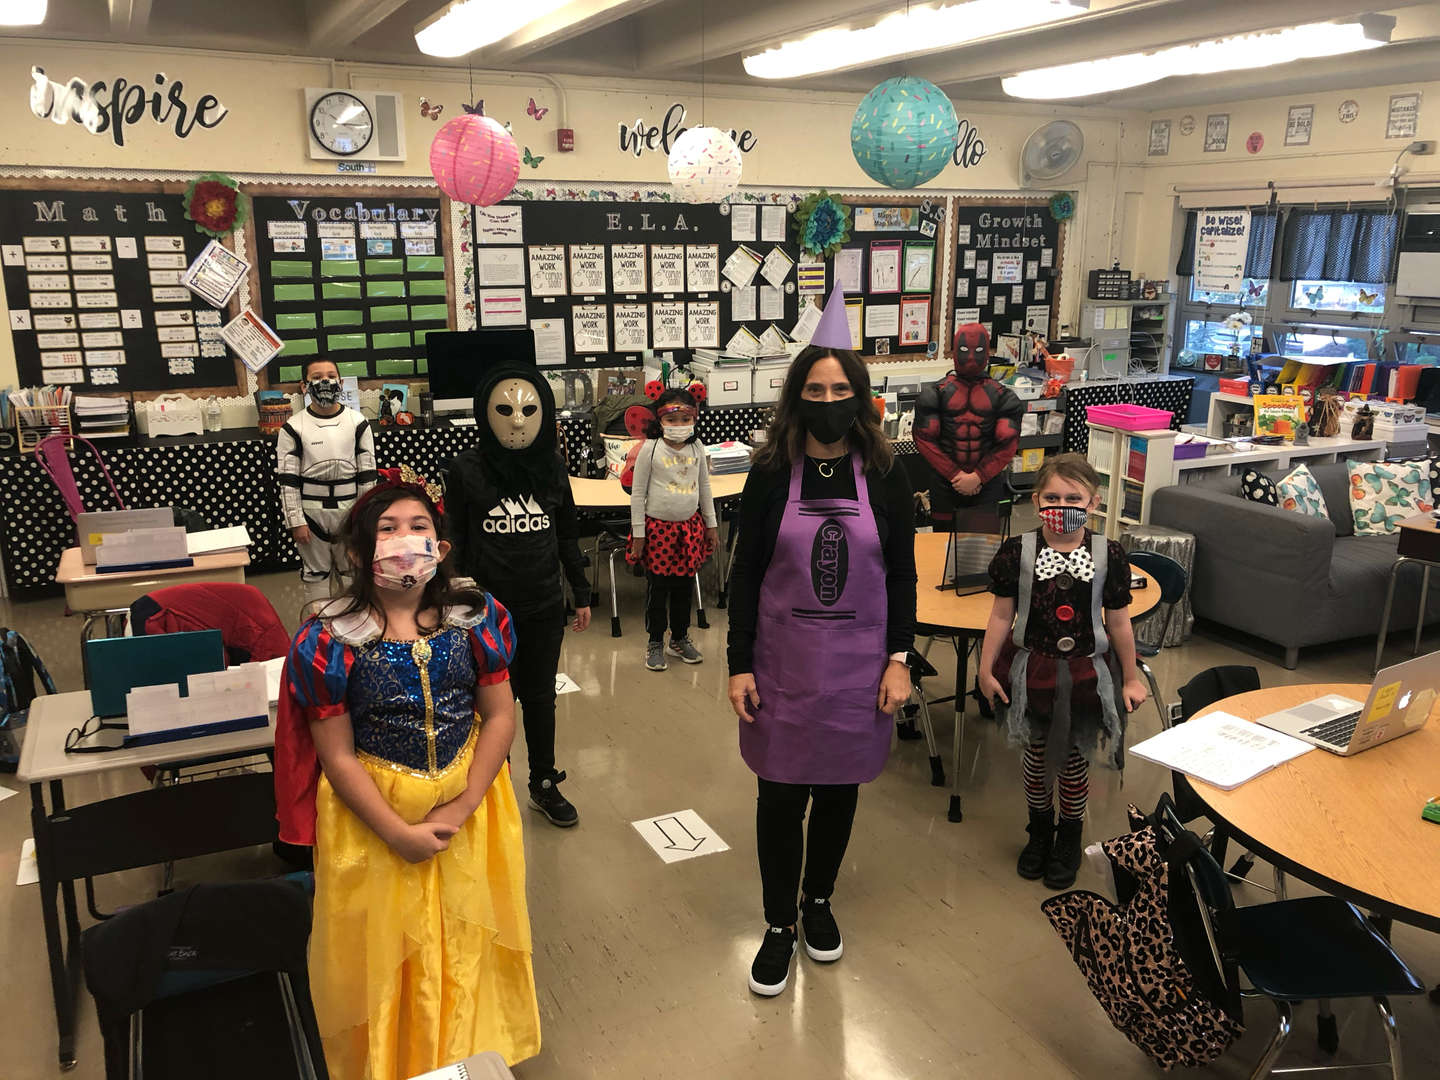 Class are wearing their costumes and posing 6feet apart